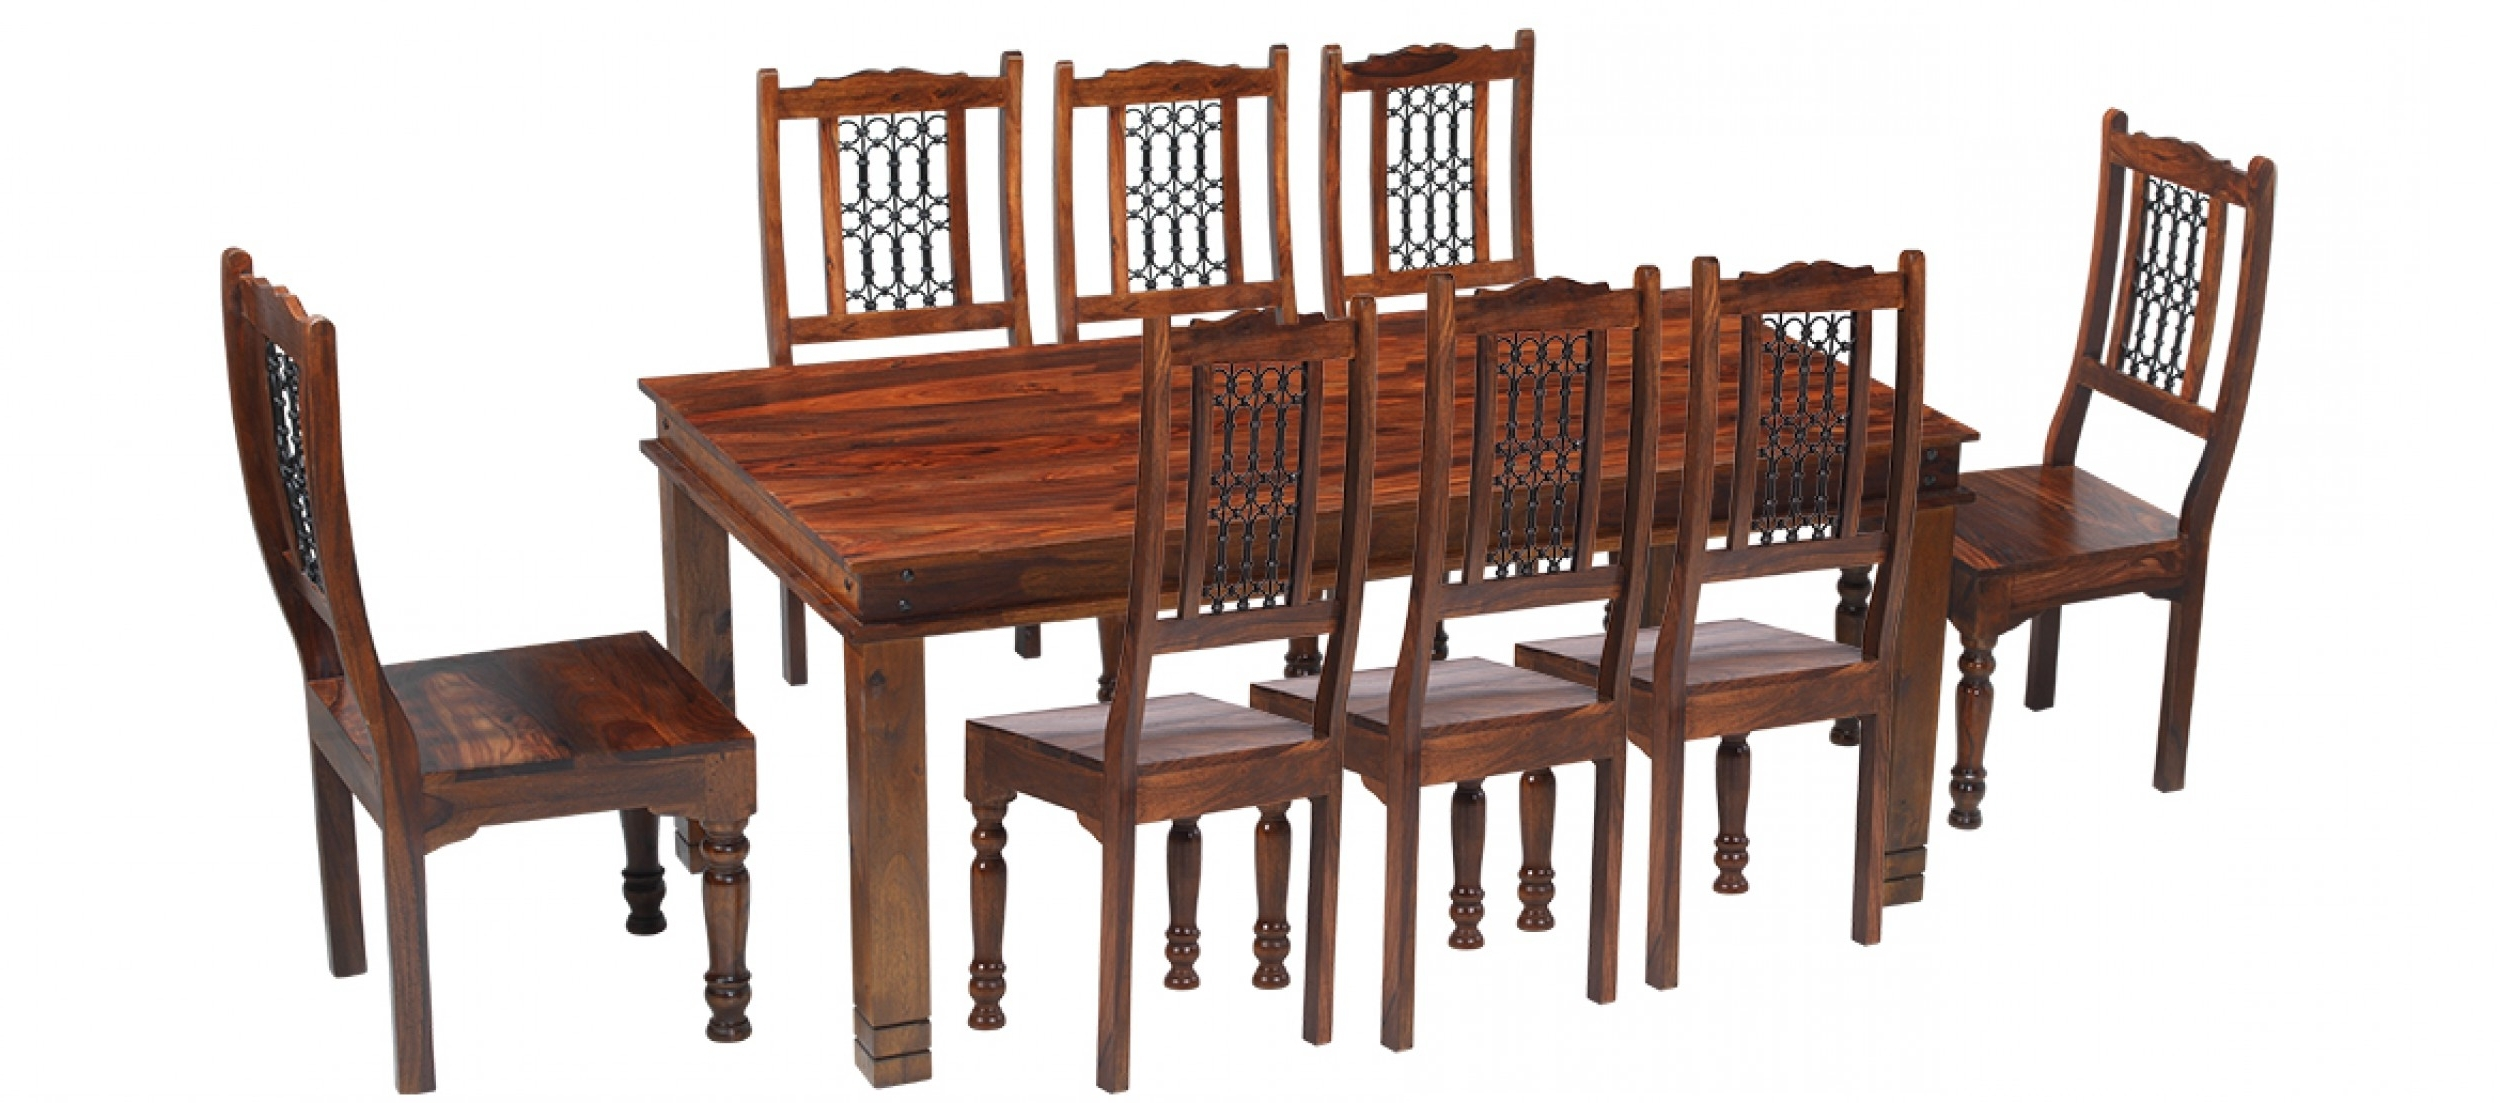 Dining Tables Chairs for Well known Jali Sheesham 200 Cm Chunky Dining Table And 8 Chairs